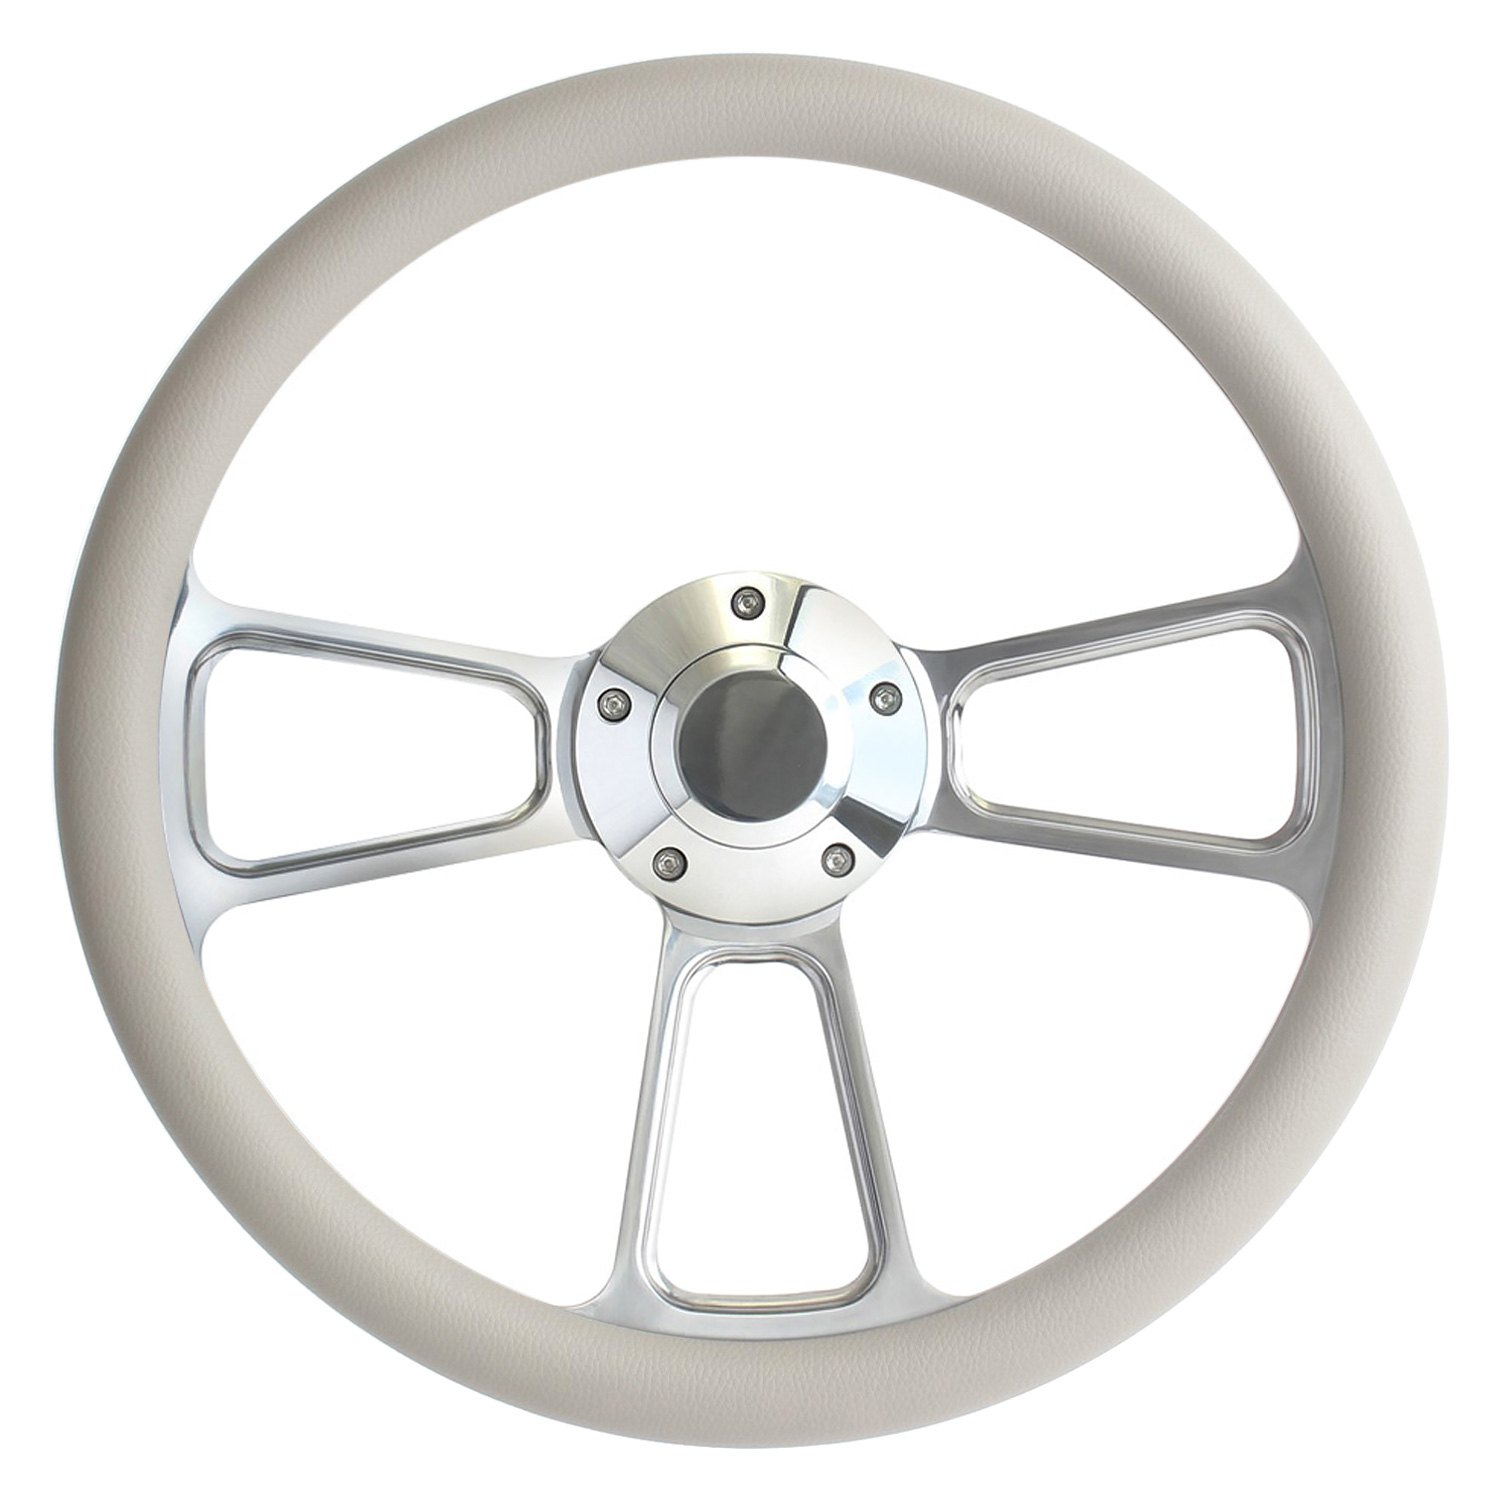 Forever Sharp® - Muscle Steering Wheel on upholstery for golf carts, rims for golf carts, springs for golf carts, brake parts for golf carts, sun visors for golf carts, transmissions for golf carts, running boards for golf carts, wheel covers for golf carts, bumpers for golf carts, pimped out golf carts, air bags for golf carts, engines for golf carts, winches for golf carts, power steering for golf carts, steering wheel illustration, suspension for golf carts, fuel pumps for golf carts, emblems for golf carts, center consoles for golf carts, hubcaps for golf carts,